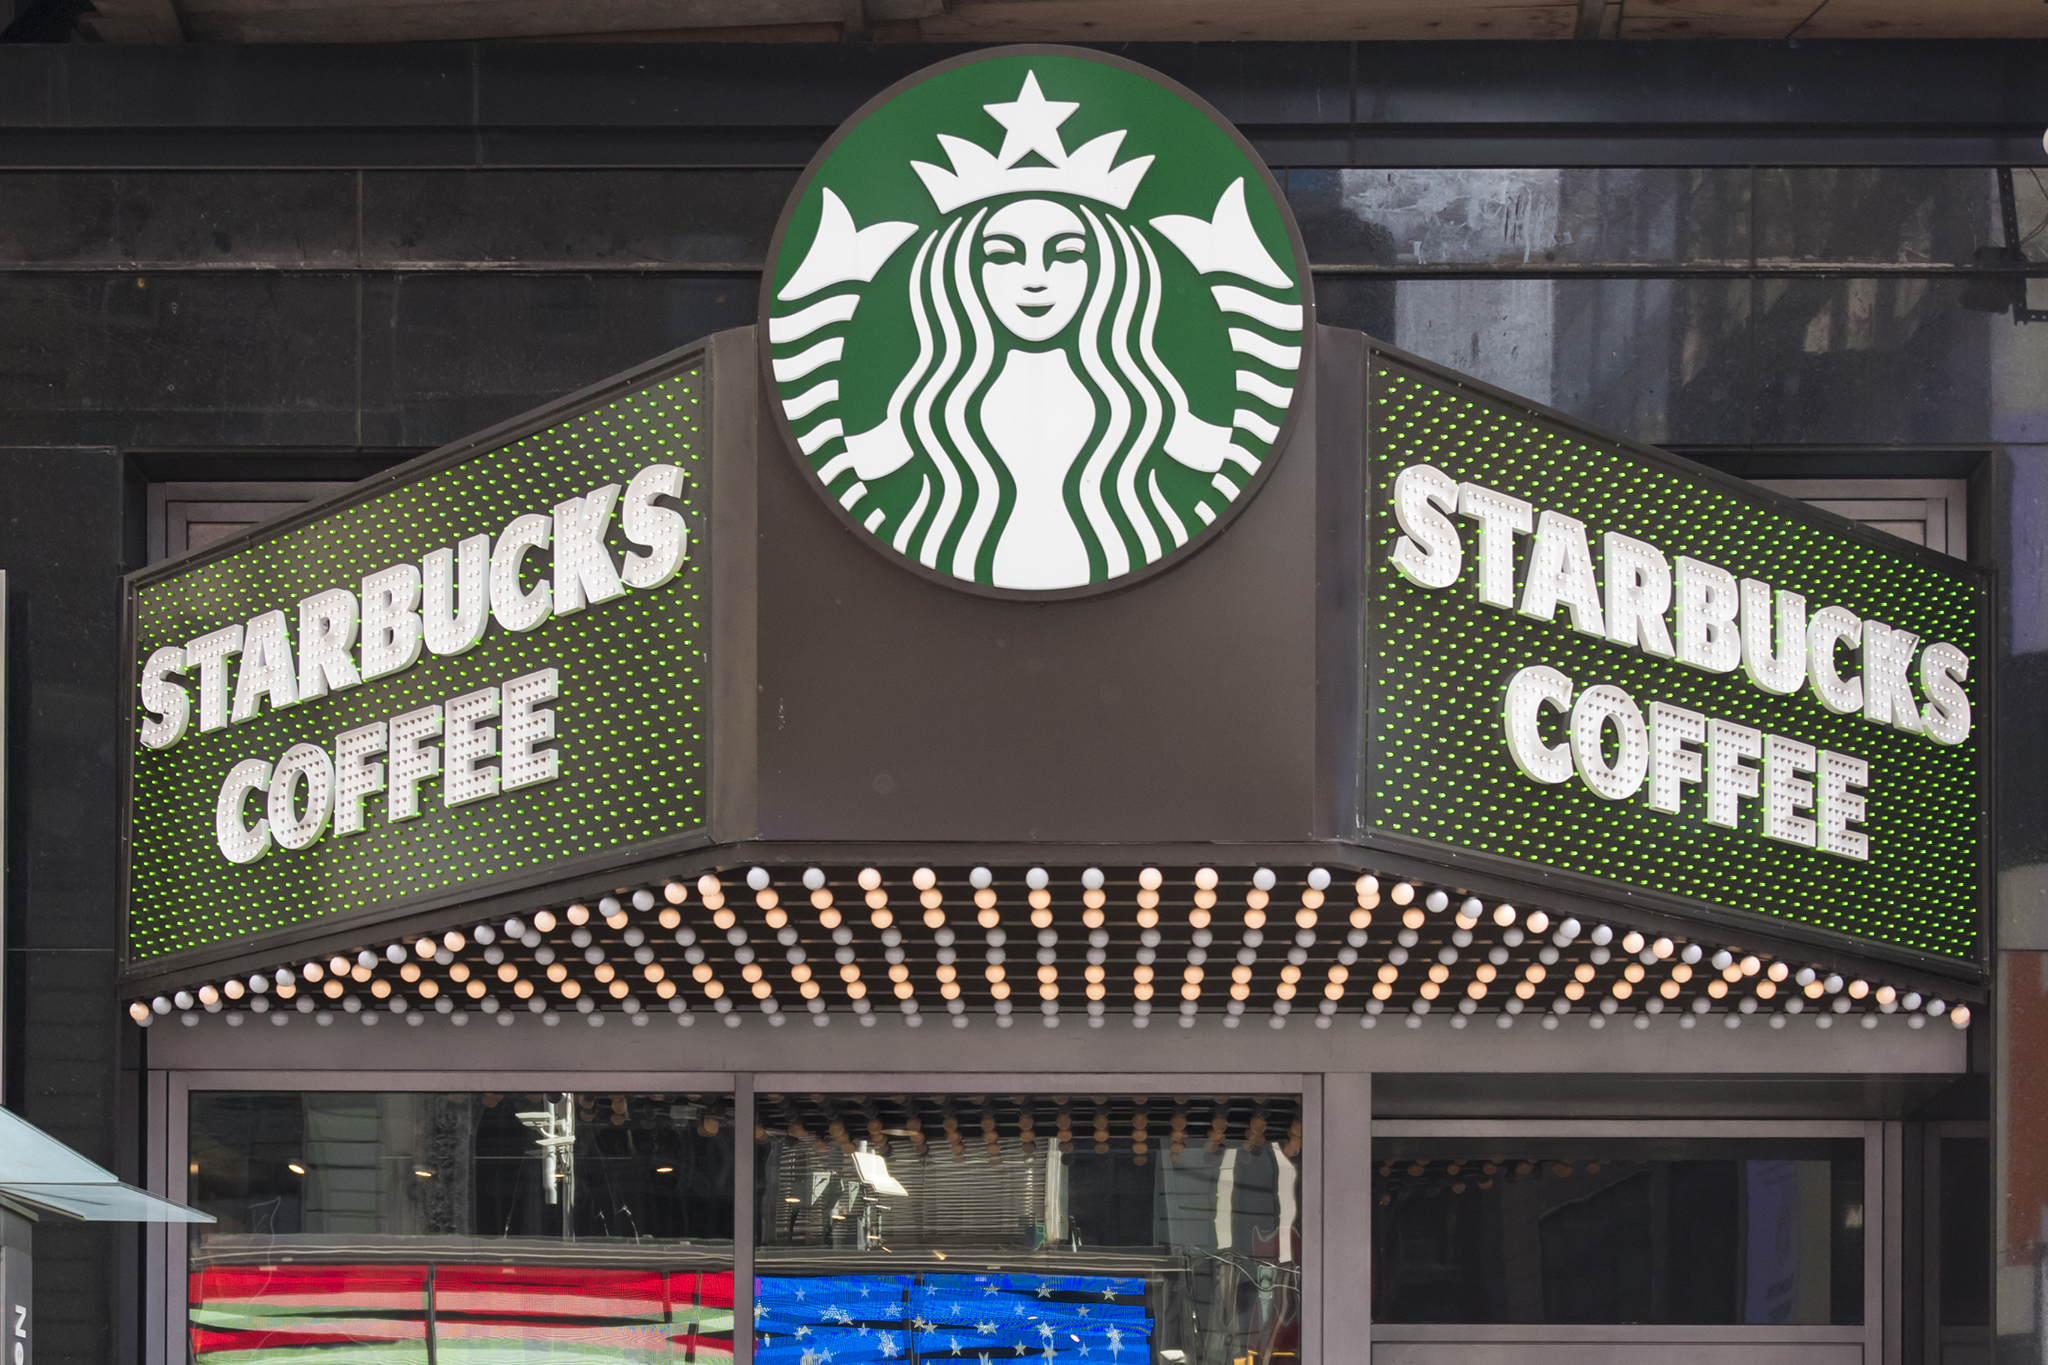 24 hour starbucks locations in nyc for coffee and lattes for 24 hour beauty salon nyc